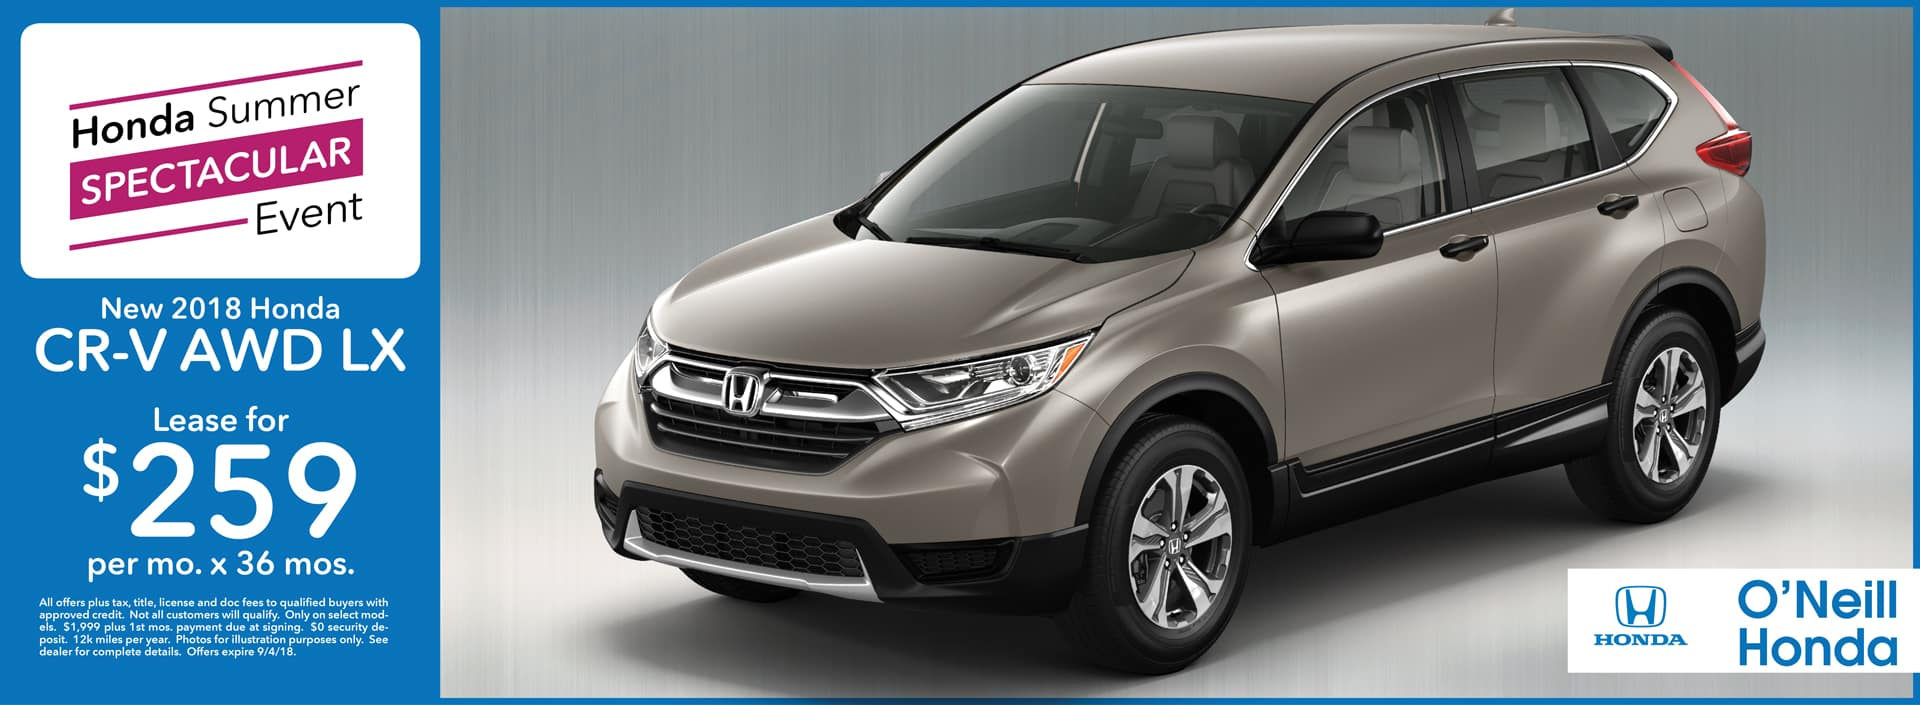 2018 Honda CR-V Lease Offer